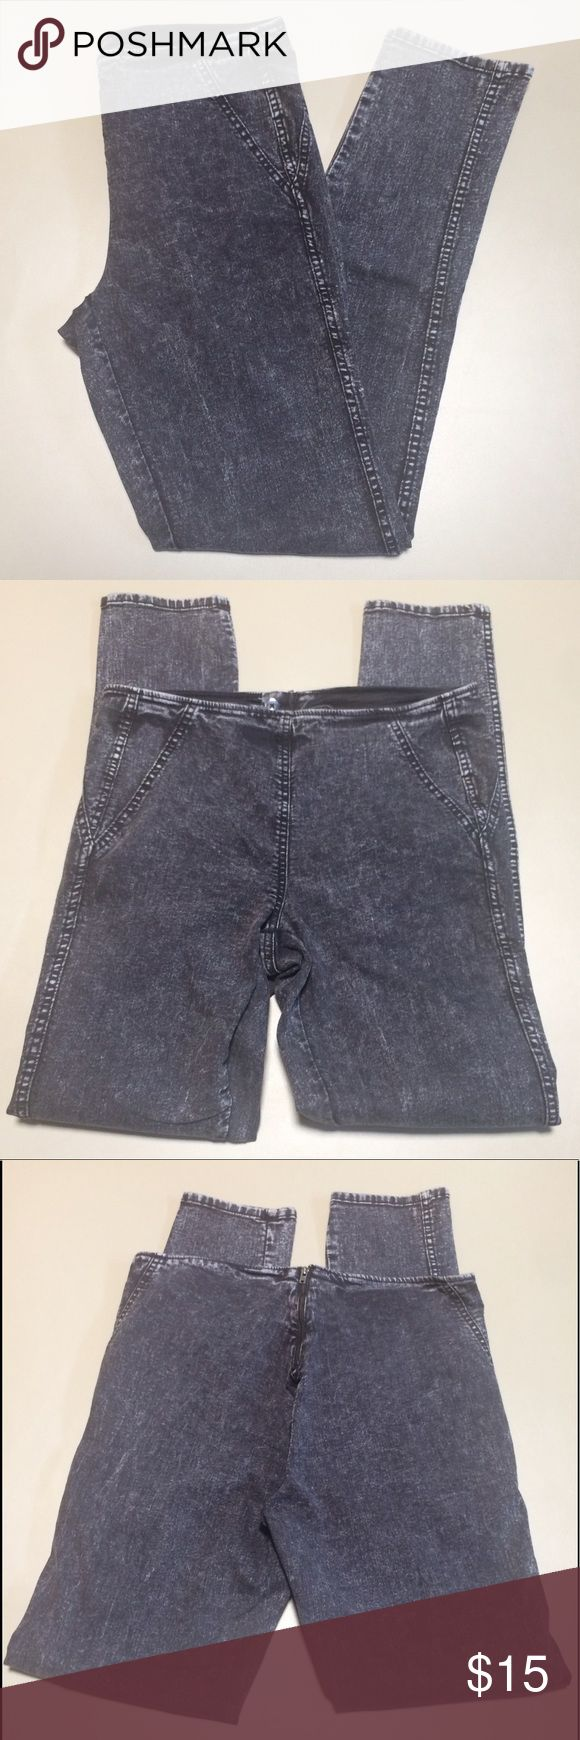 H&M high waisted denim H&M - DIVIDE: high waisted, acid wash denim pant in black. Back zip closure. Size 12. Brand new with tags attached. H&M Jeans Skinny